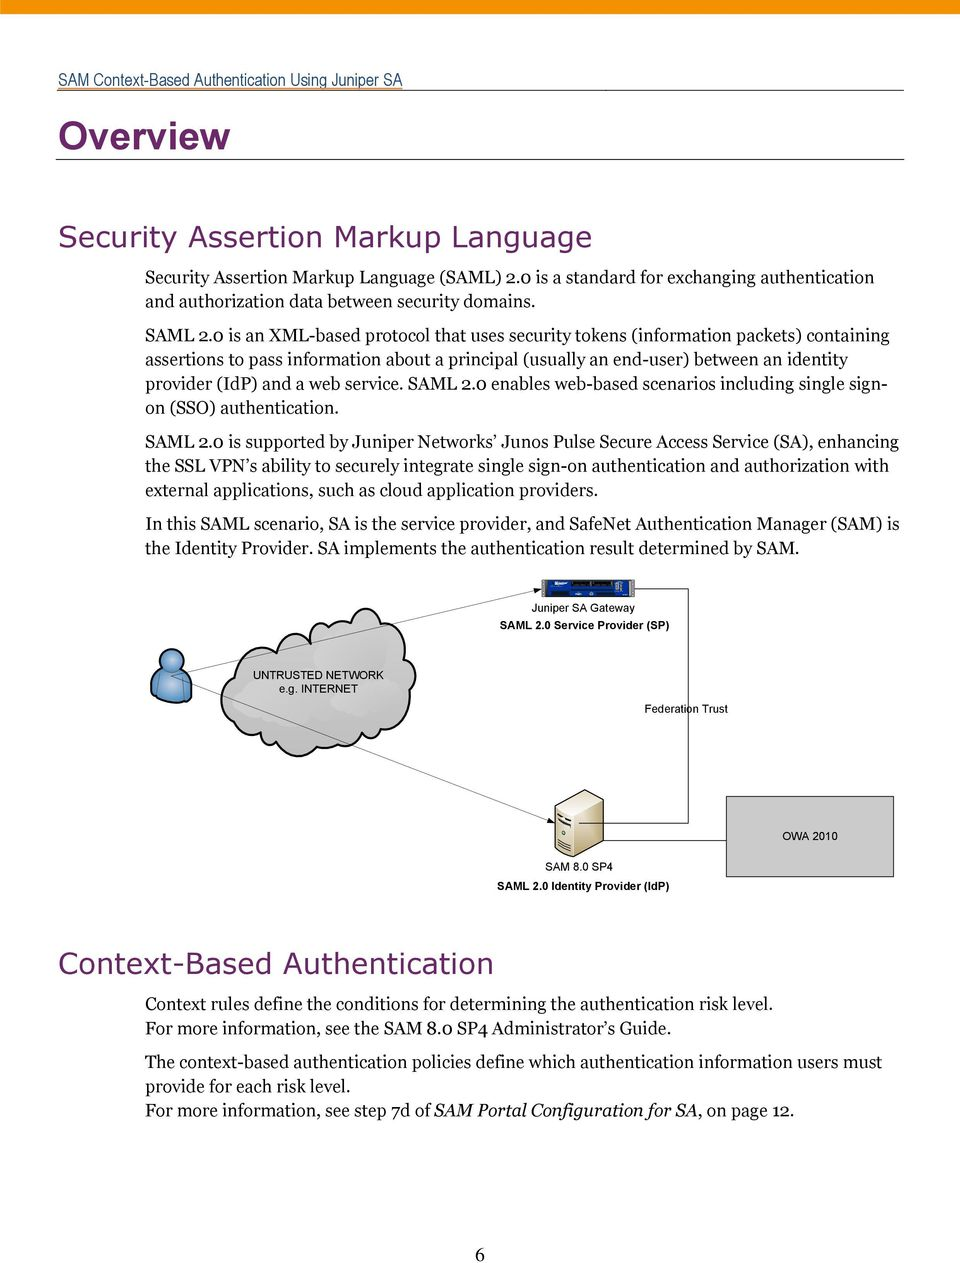 (SAML) 2.0 is a standard for exchanging authentication and authorization data between security domains. SAML 2.